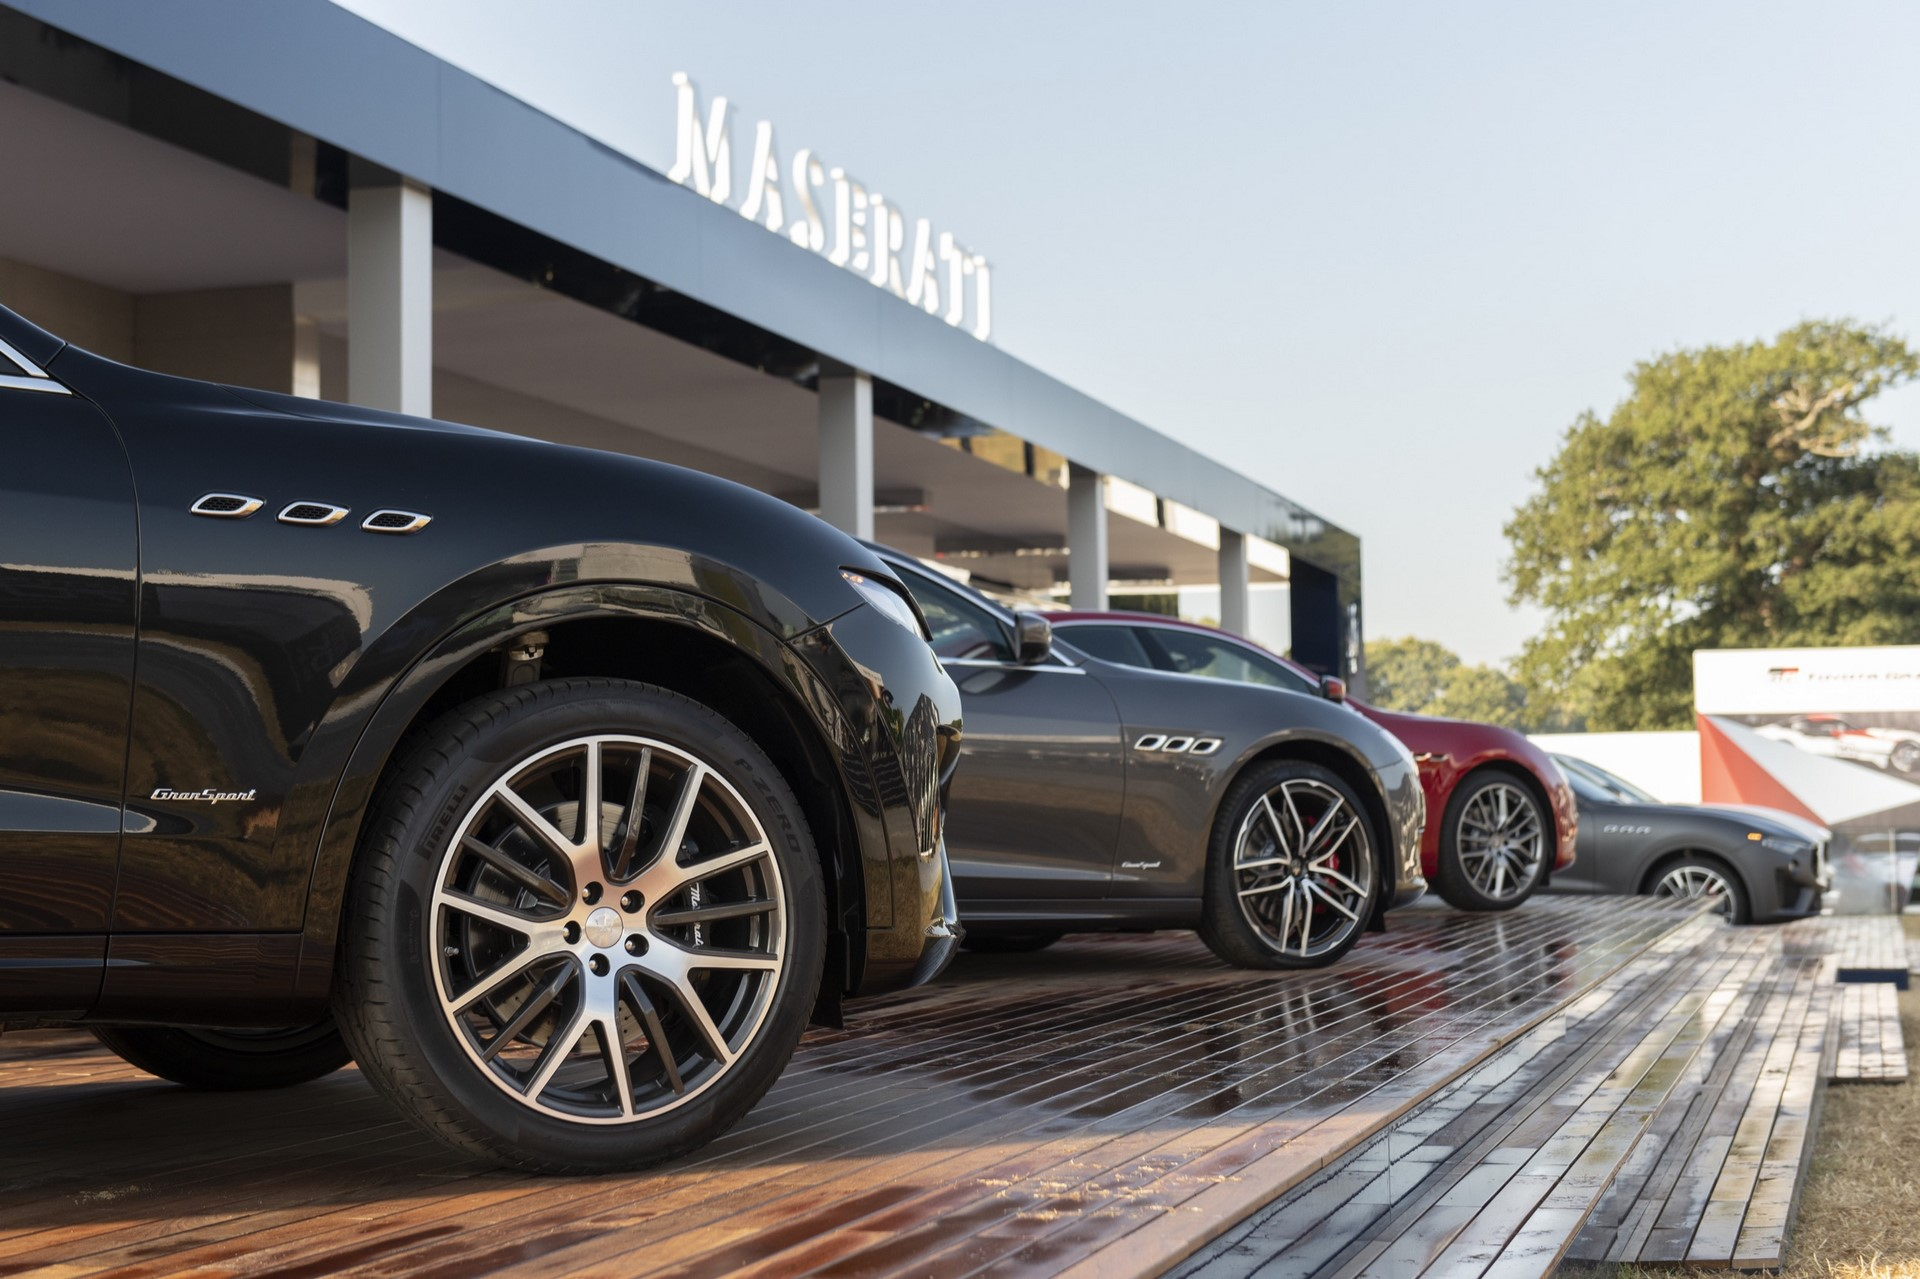 Maserati stand - Maserati at Goodwood Festival of Speed